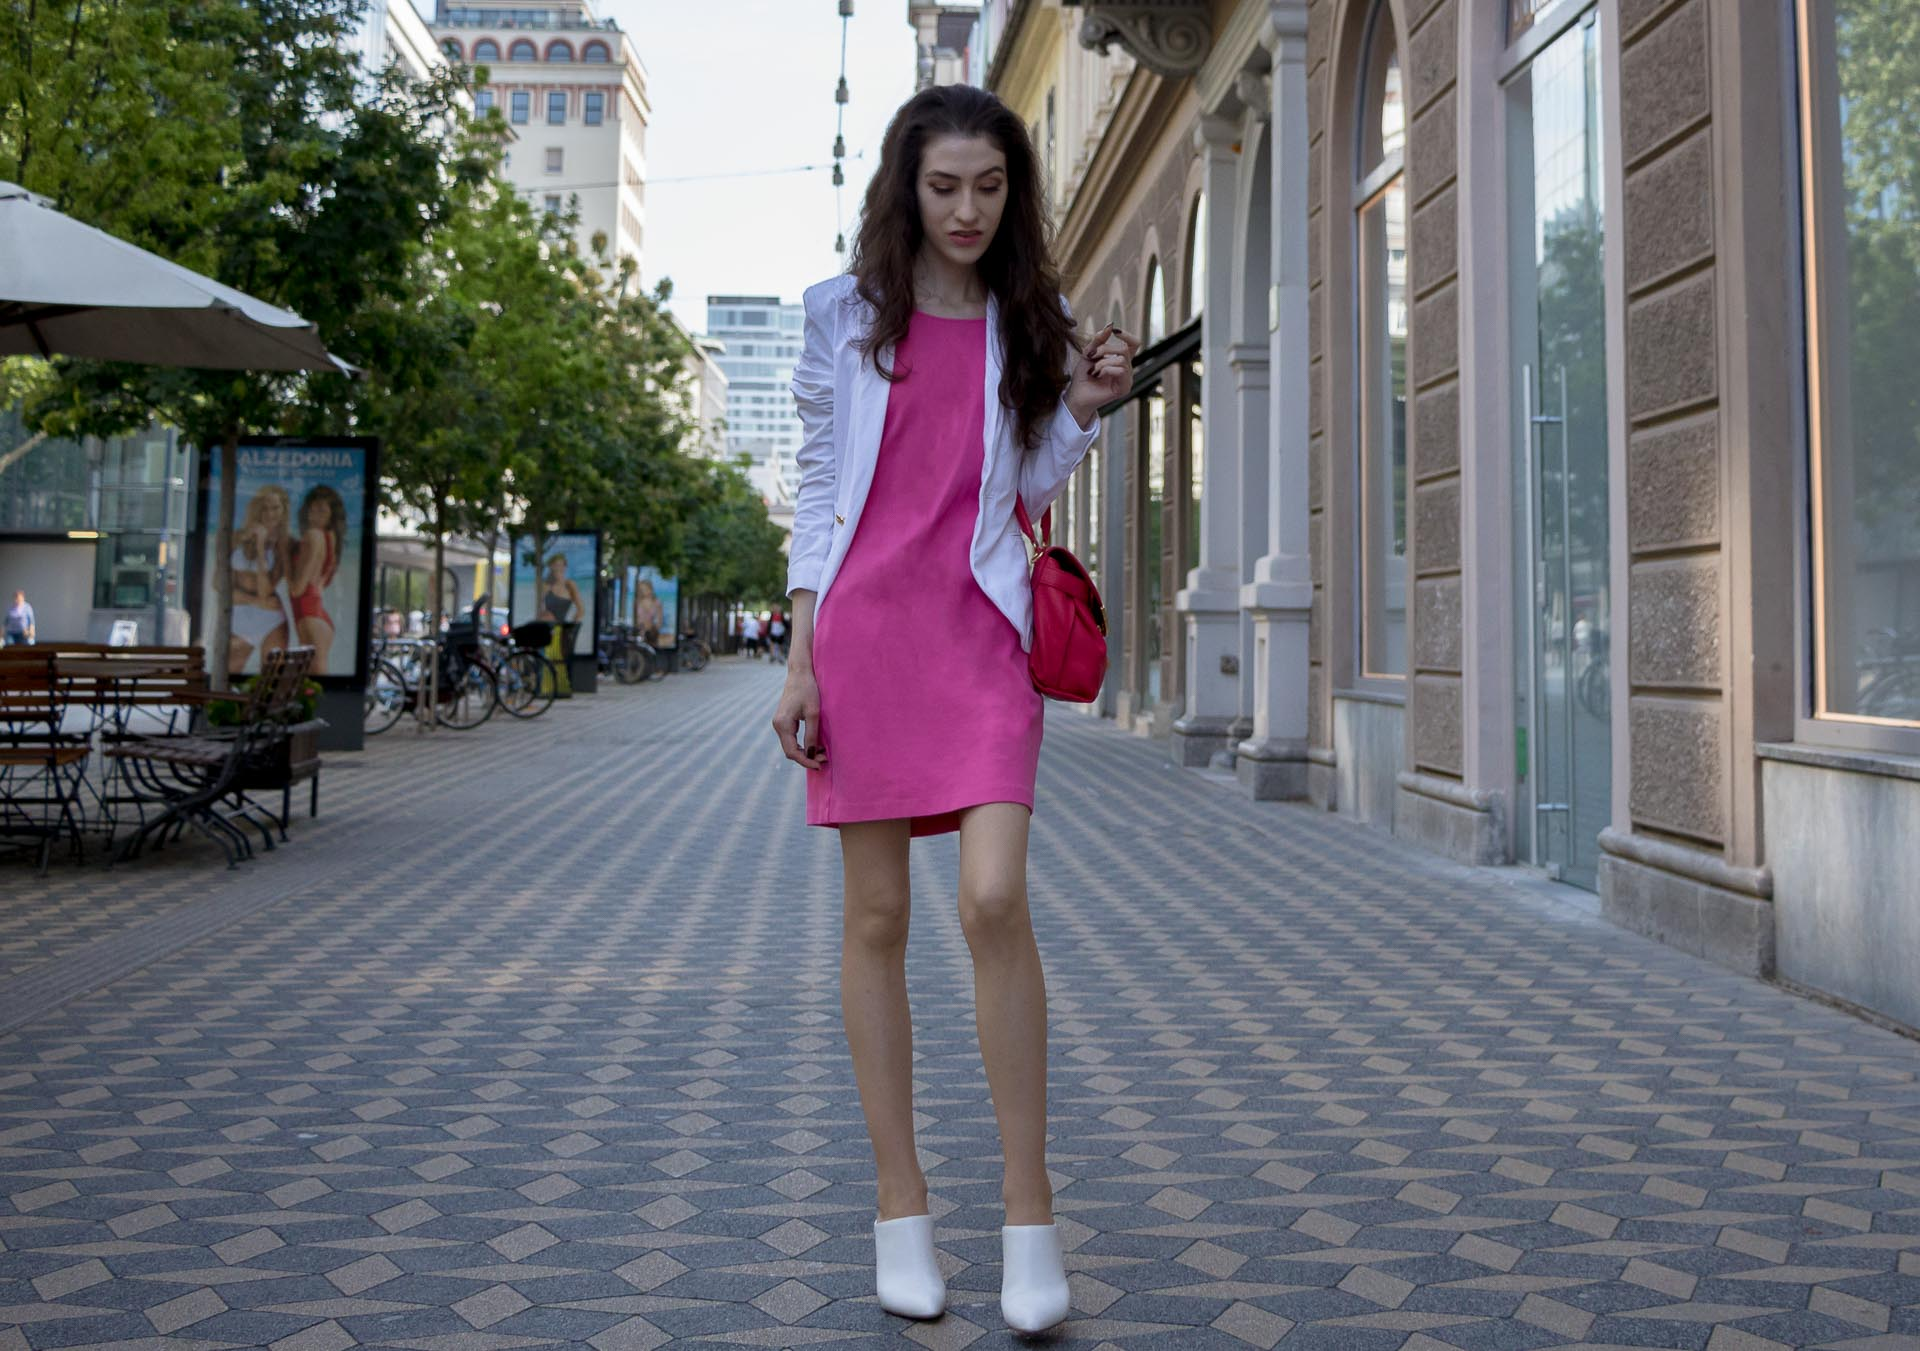 Fashion Blogger Veronika Lipar of Brunette from Wall Street dressed in summer business casual outfit, white high heel close toe mules, pink tailored short dress, white blazer, pink top handle bag standing on the street in Ljubljana